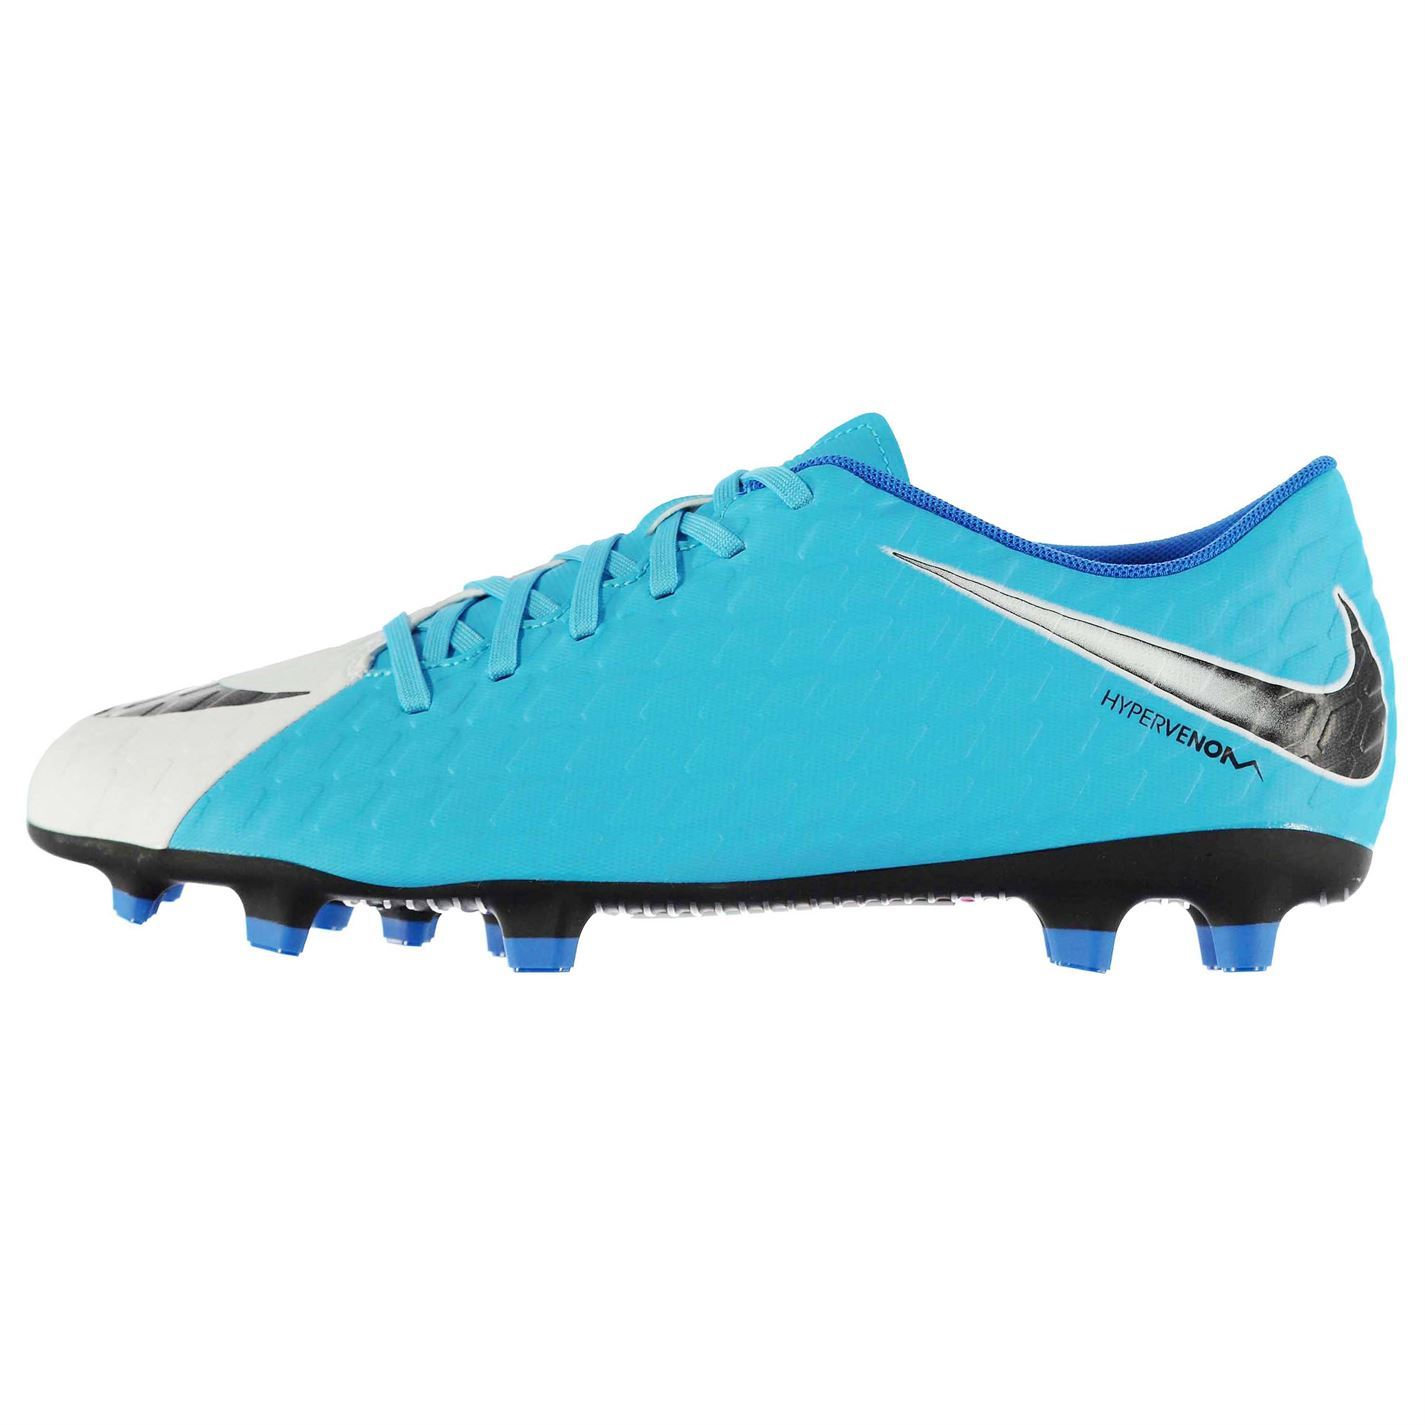 finest selection fa036 c8de6 Details about Nike Hypervenom III 3 Phade FG Firm Ground Football Boots  Mens Wht/Blu Soccer